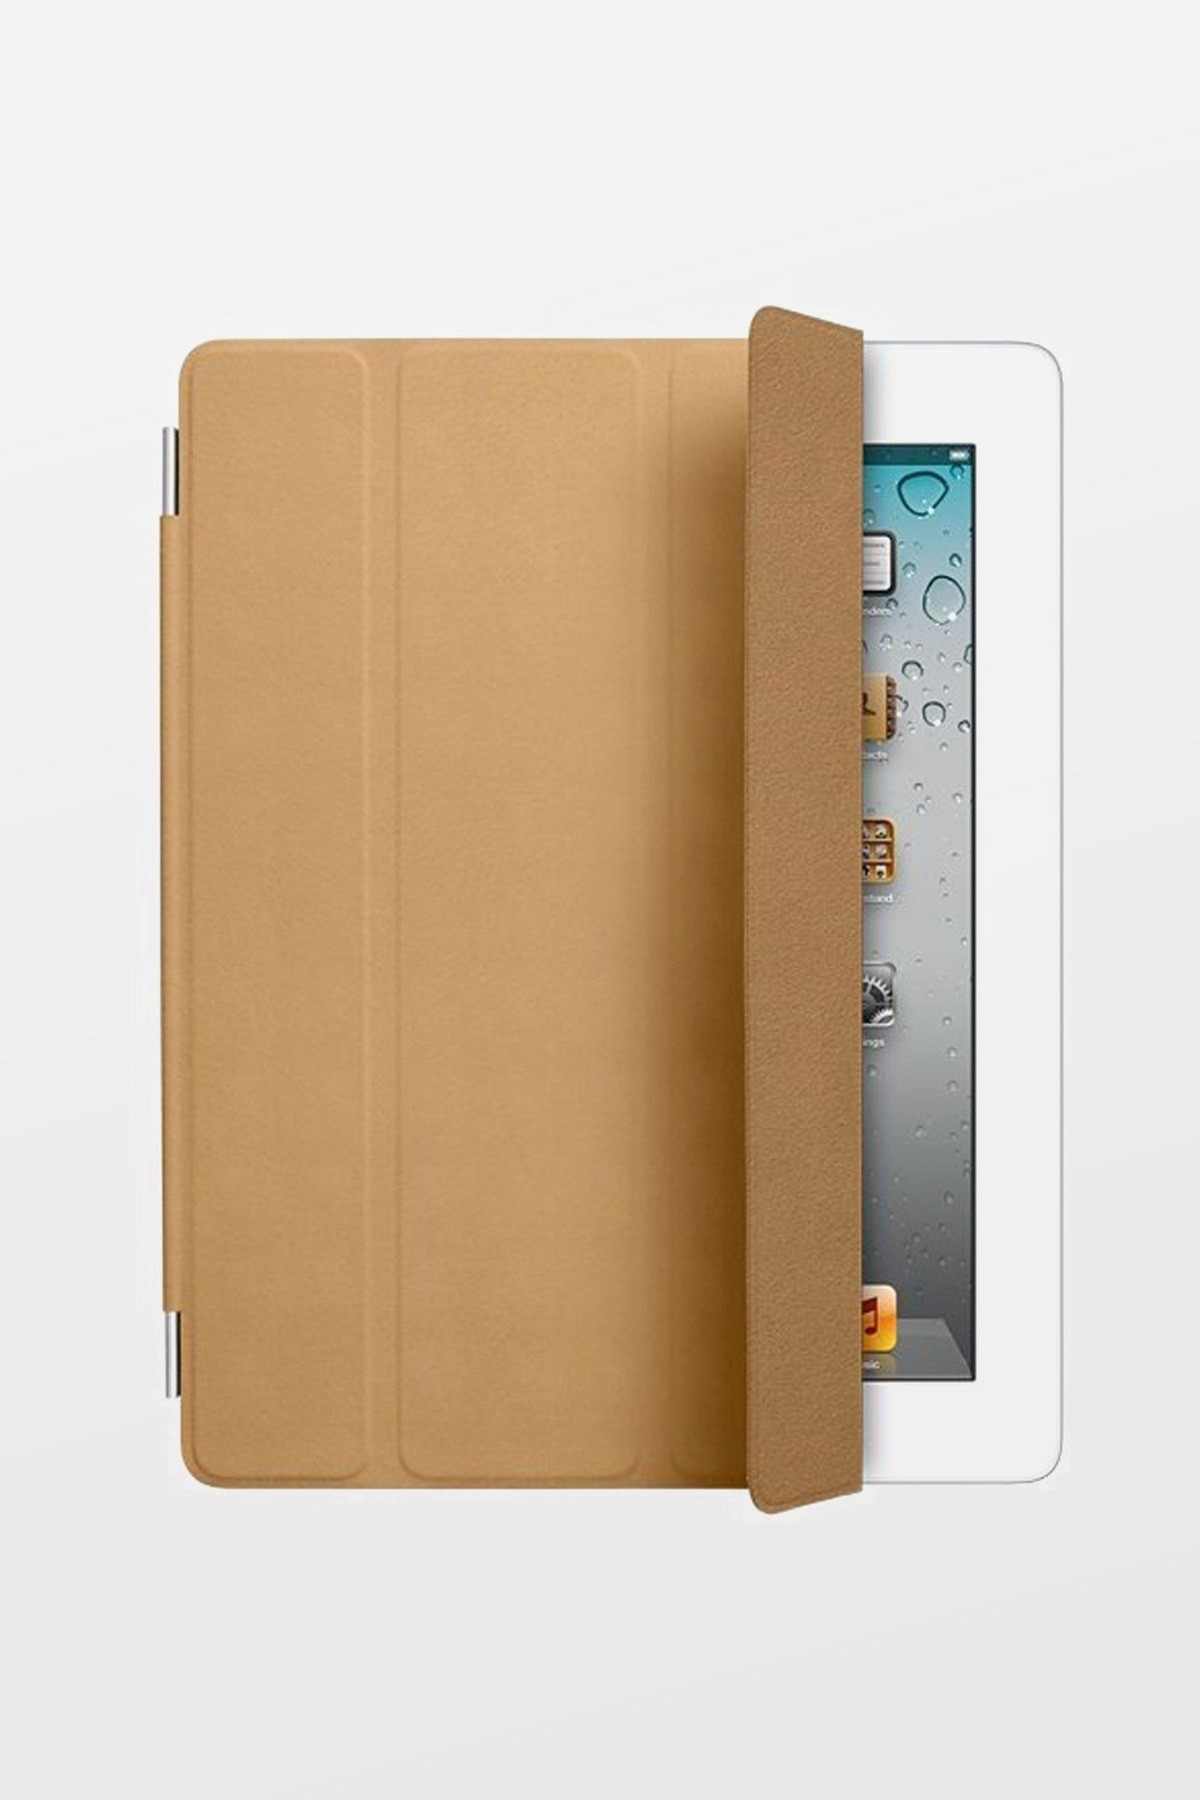 iPad 2/3/4 Smart Cover - Leather - Tan